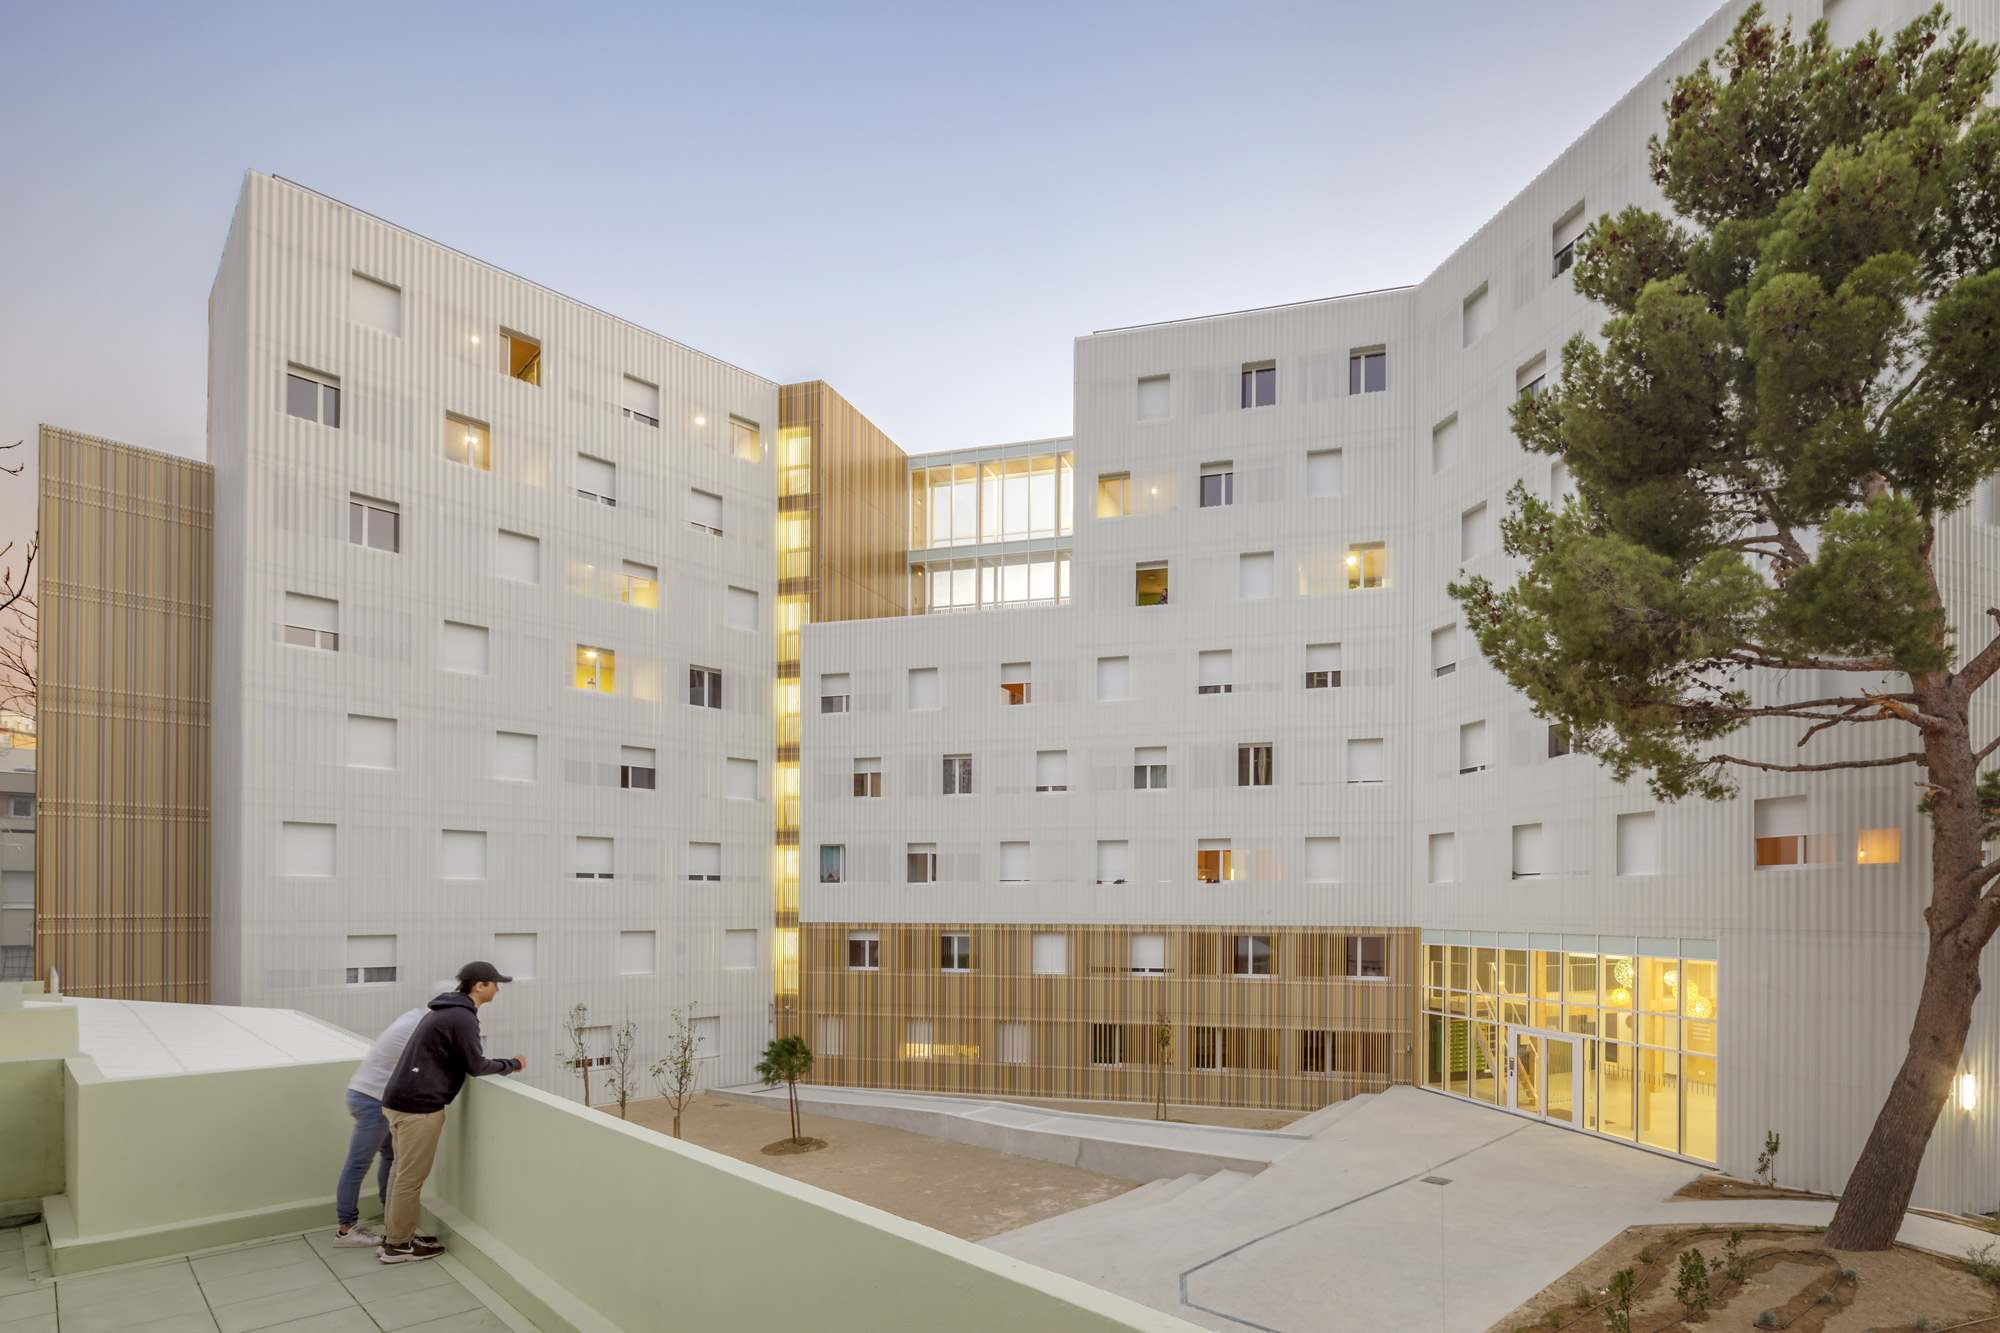 LUCIEN CORNIL STUDENT RESIDENCE © Benoît Wehrlé courtesy A+Architecture